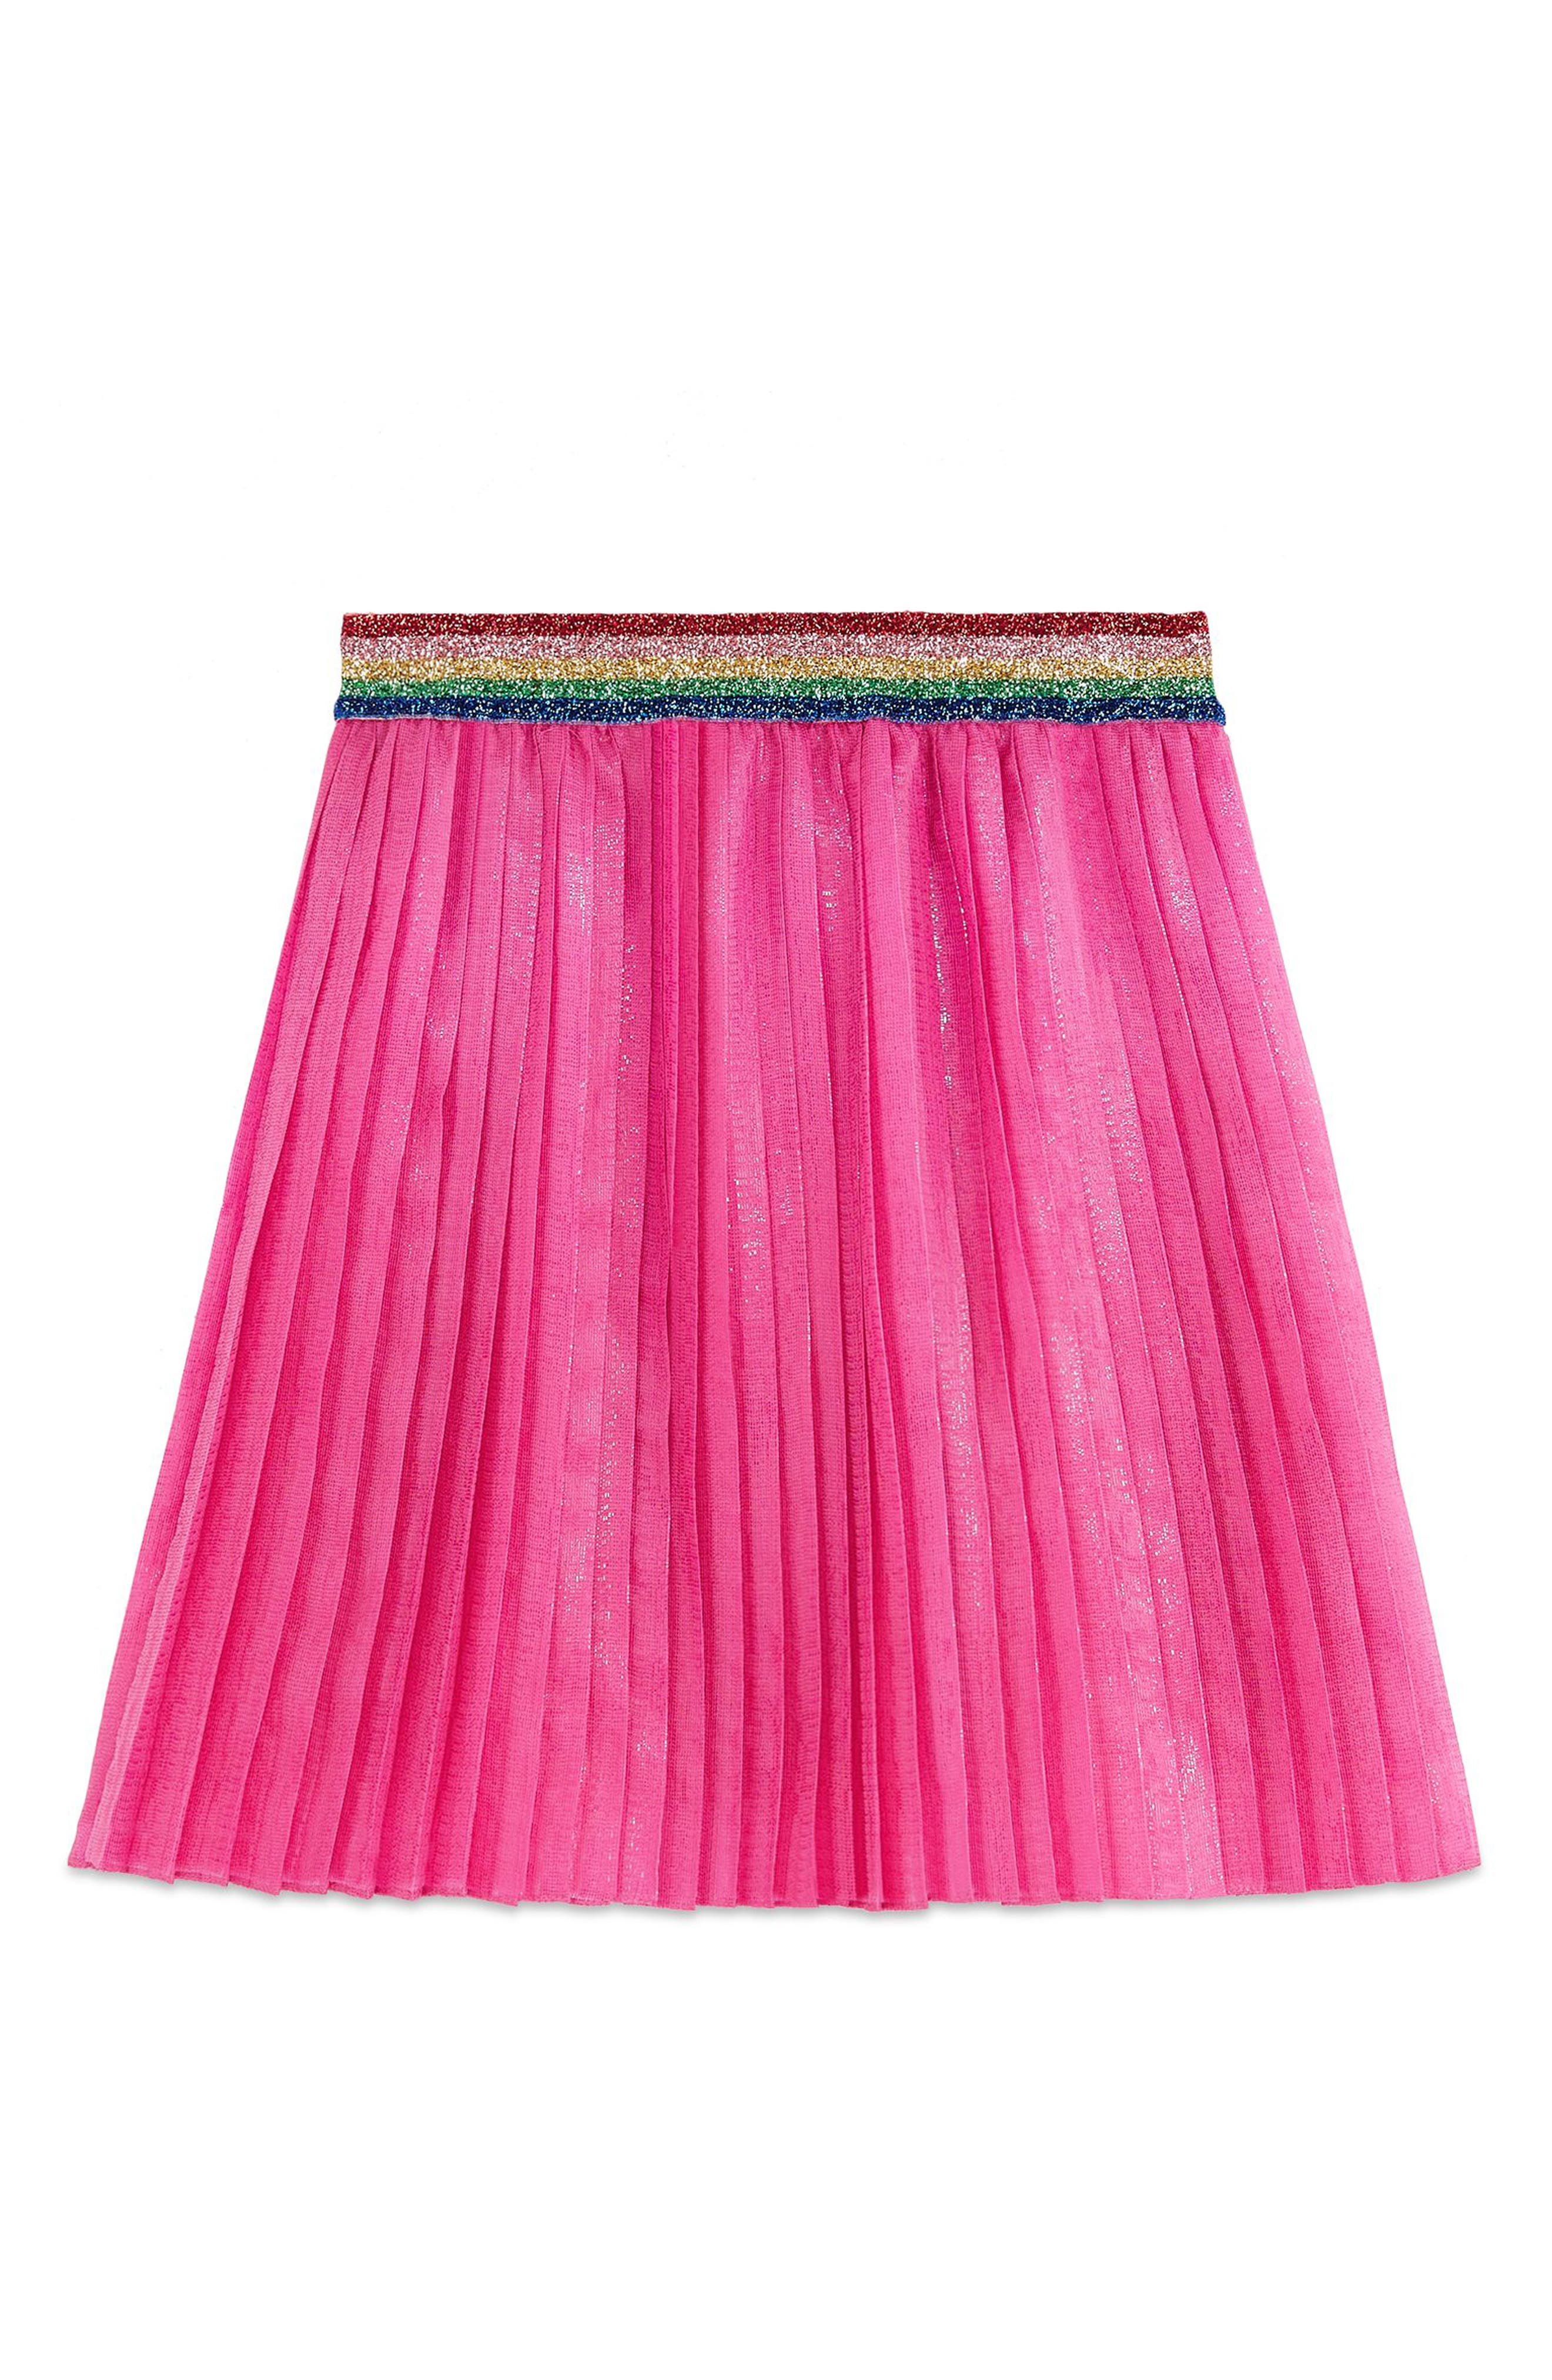 Gucci Pleated Iridescent Organza Skirt (Little Girls & Big Girls)